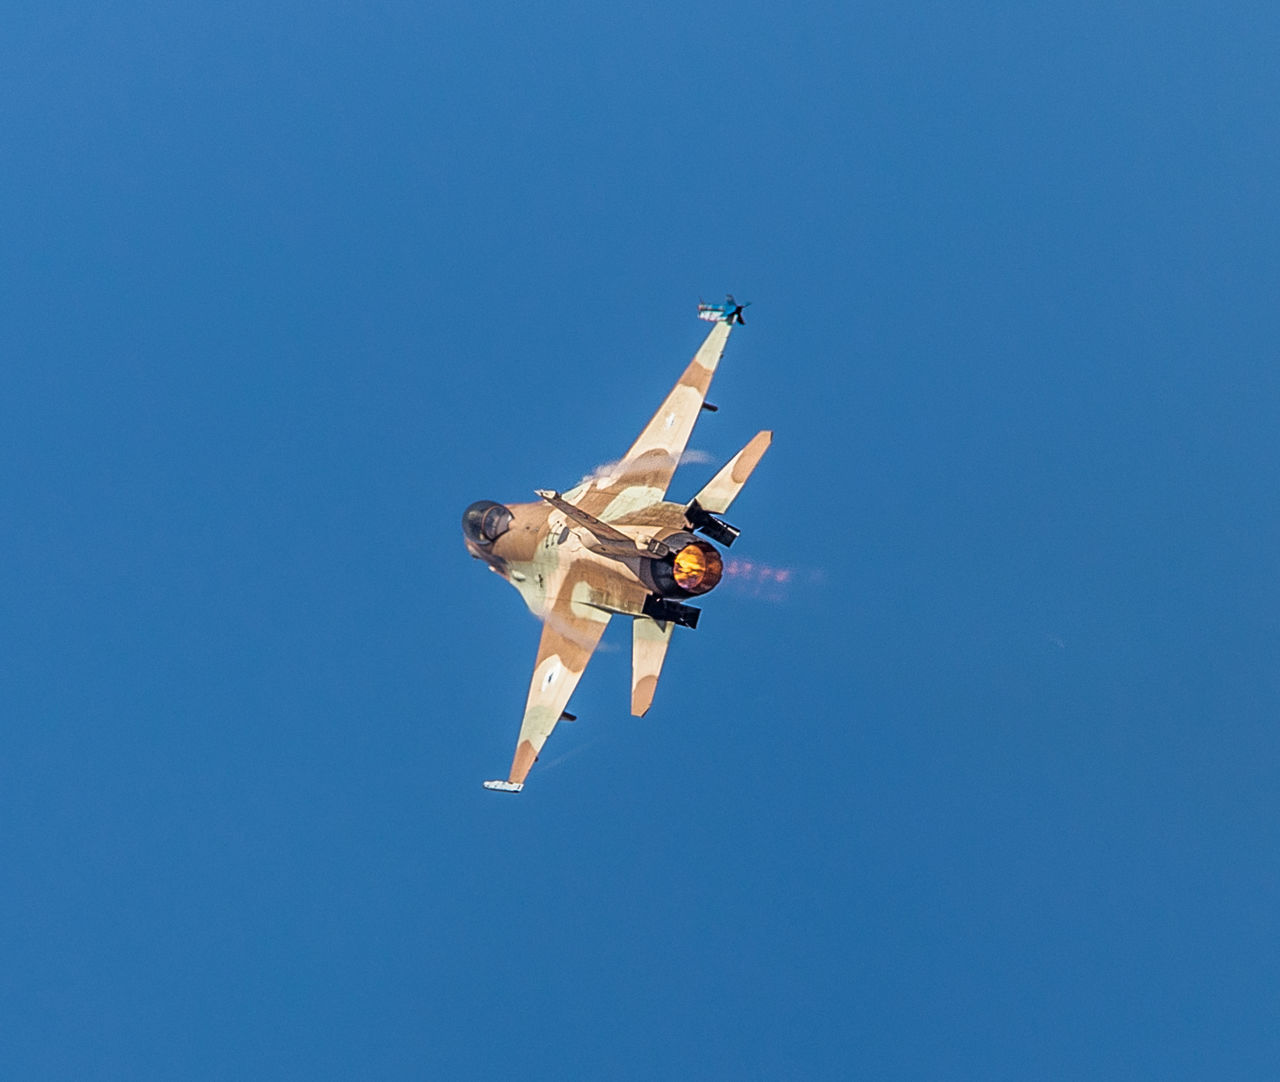 Aviation Blue Blue Sky Clear Sky F-16 Fighting Falcon Flight Flying General Dynamics IAF Israeli Air Force Low Angle View Mid-air RISK Sky